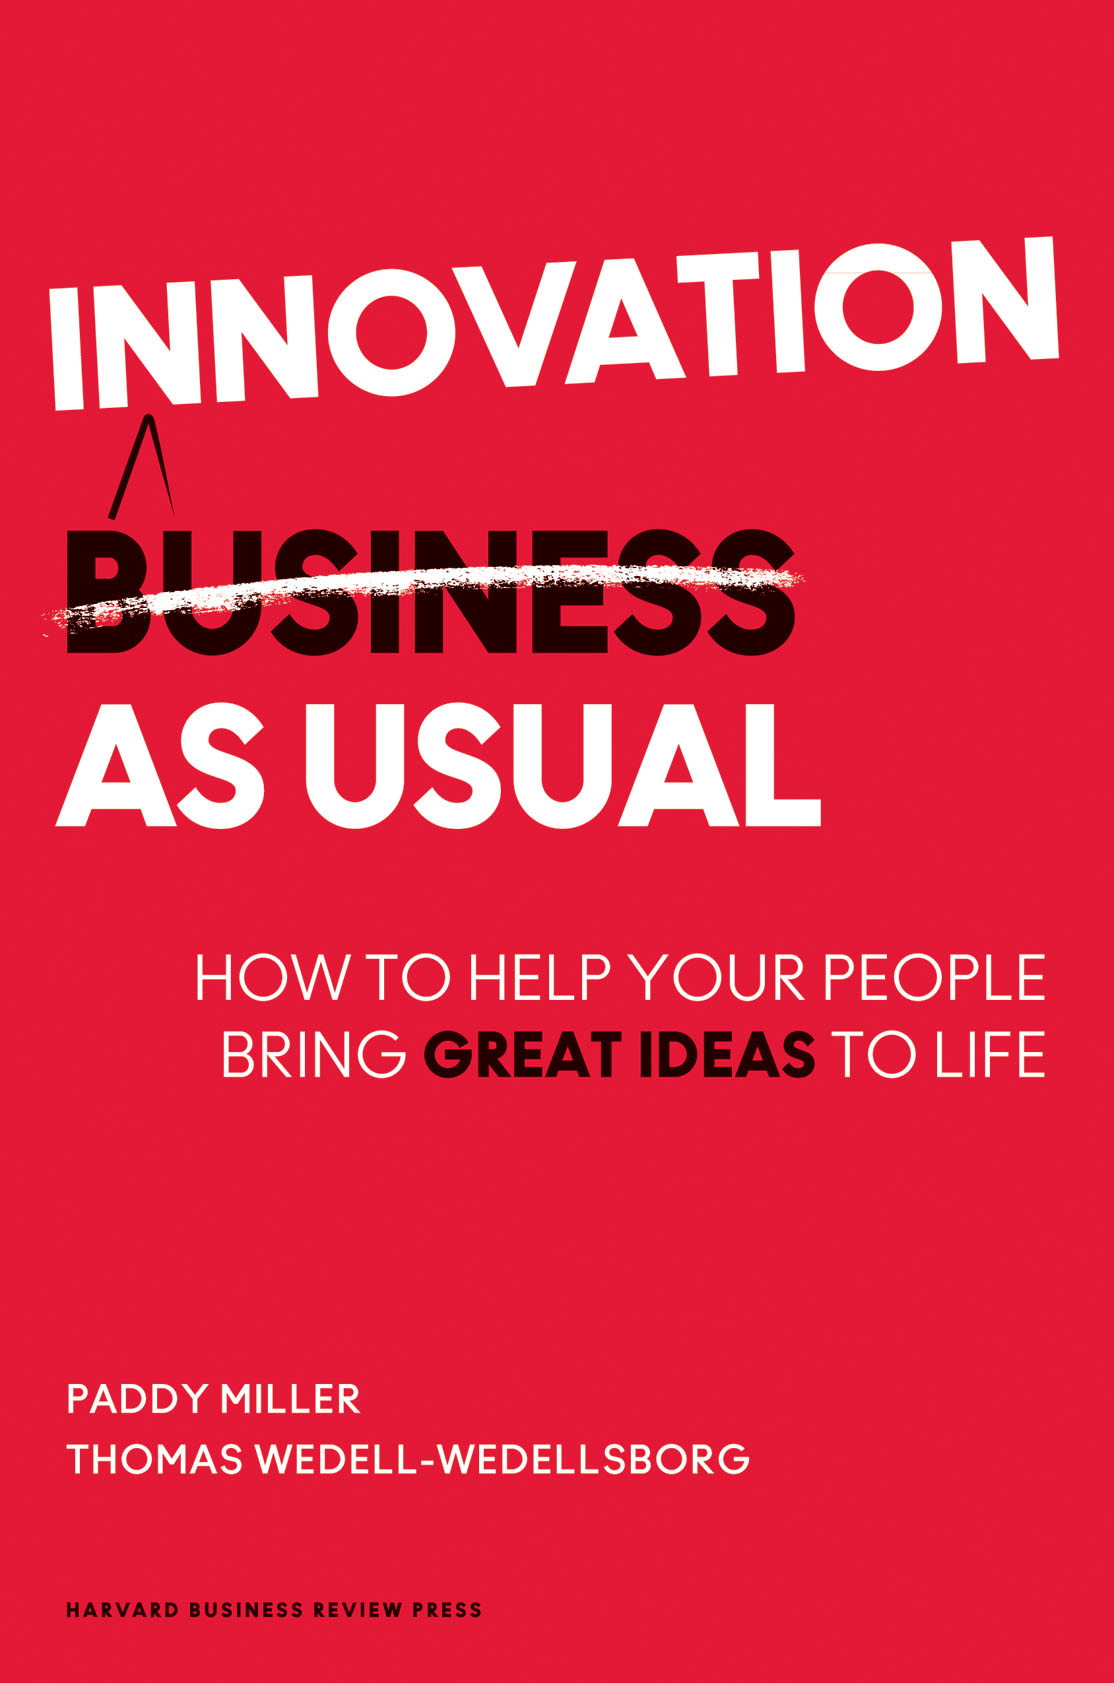 book the executive agency revolution in whitehall public interest versus bureau shaping perspectives transforming